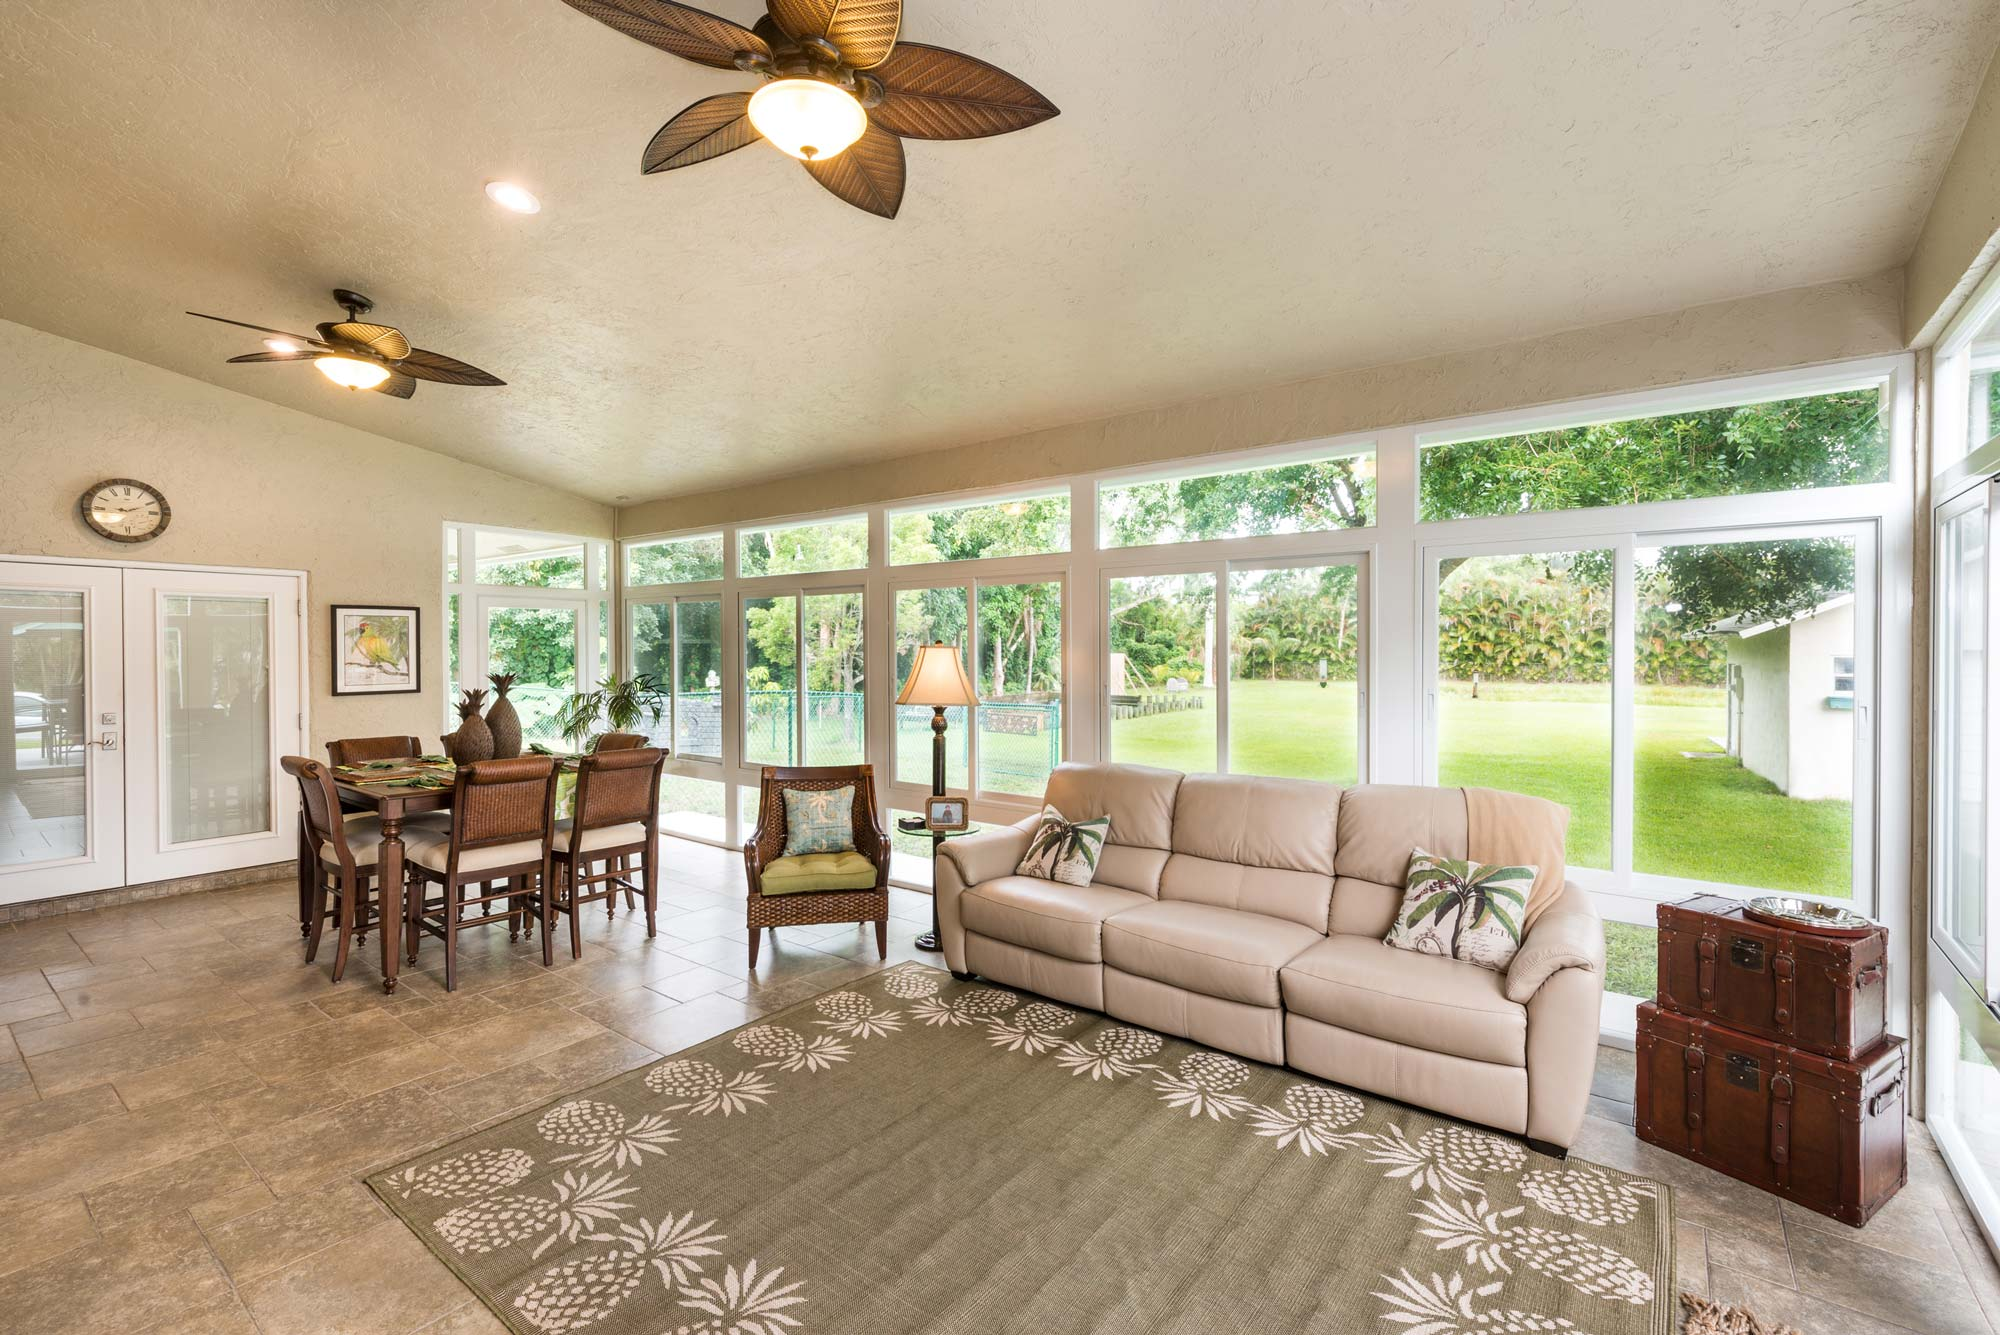 Impact-Glass-Sunroom-added-to-a-ranch-style-florida-home